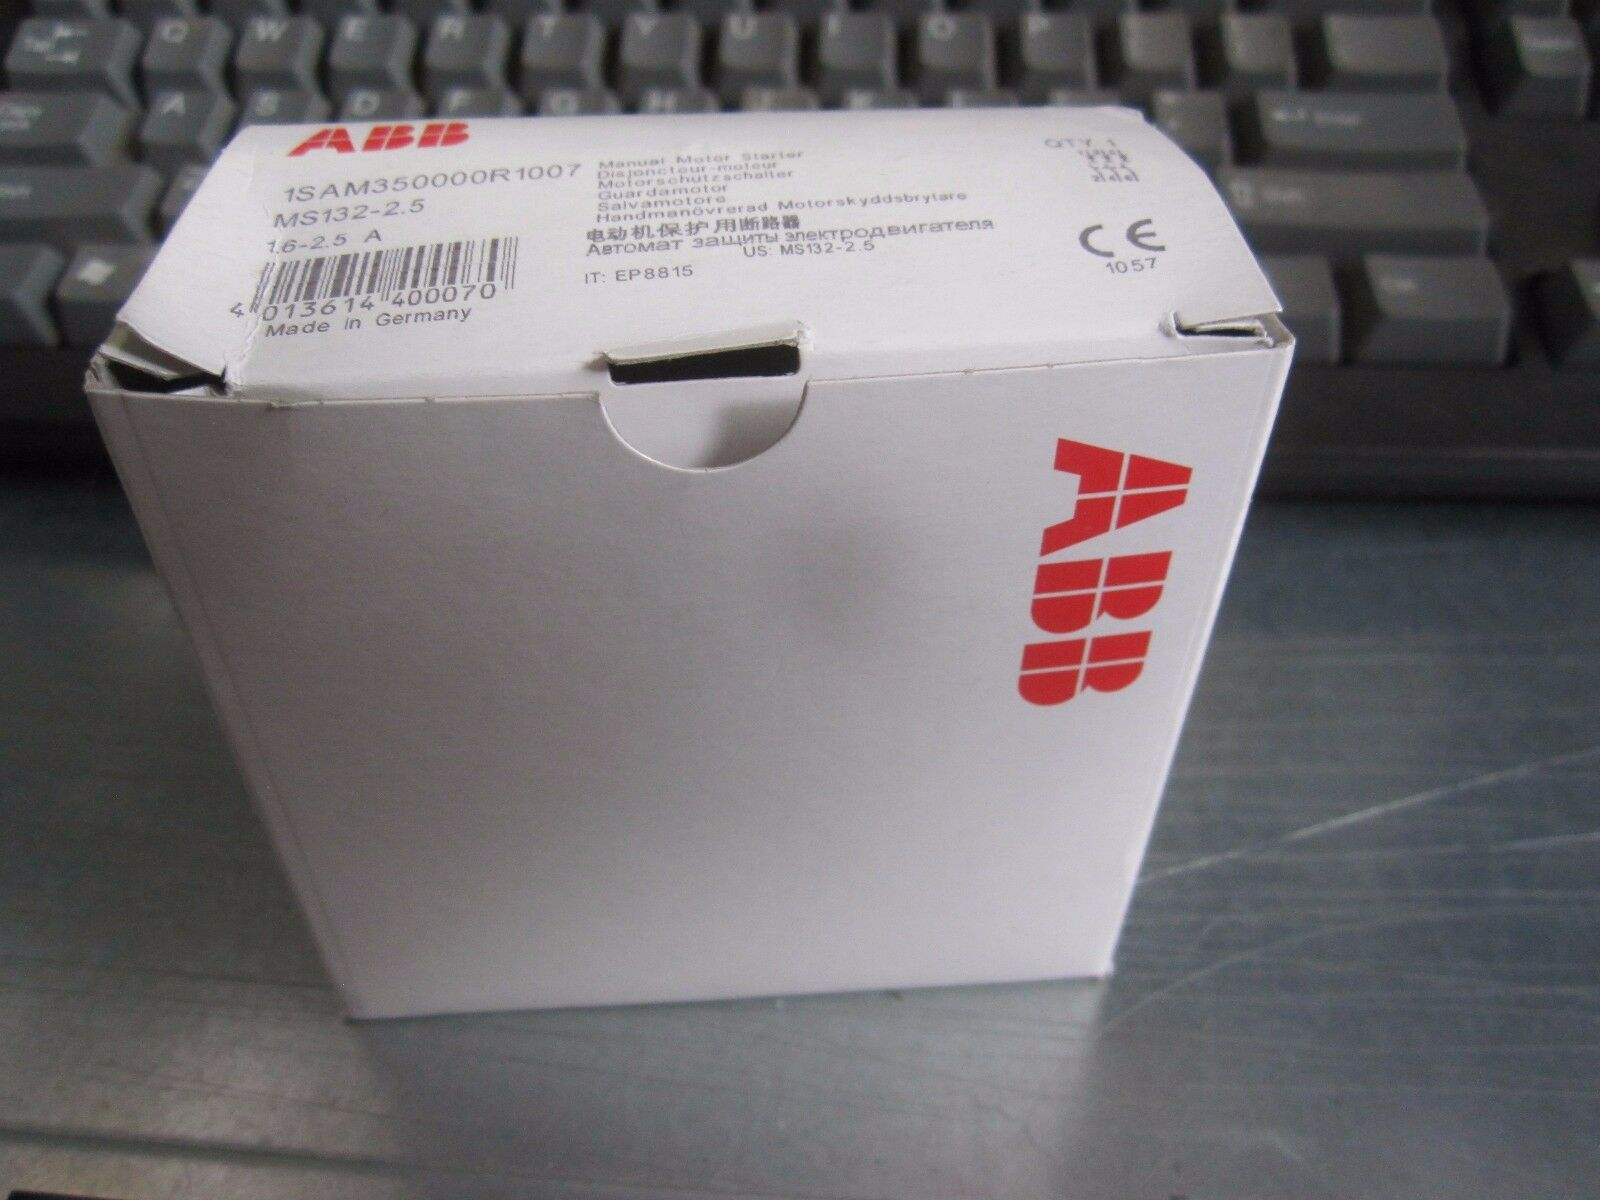 ABB Ms132-2.5 - 1SAM350000R1007 Motor Starter Manual | eBay